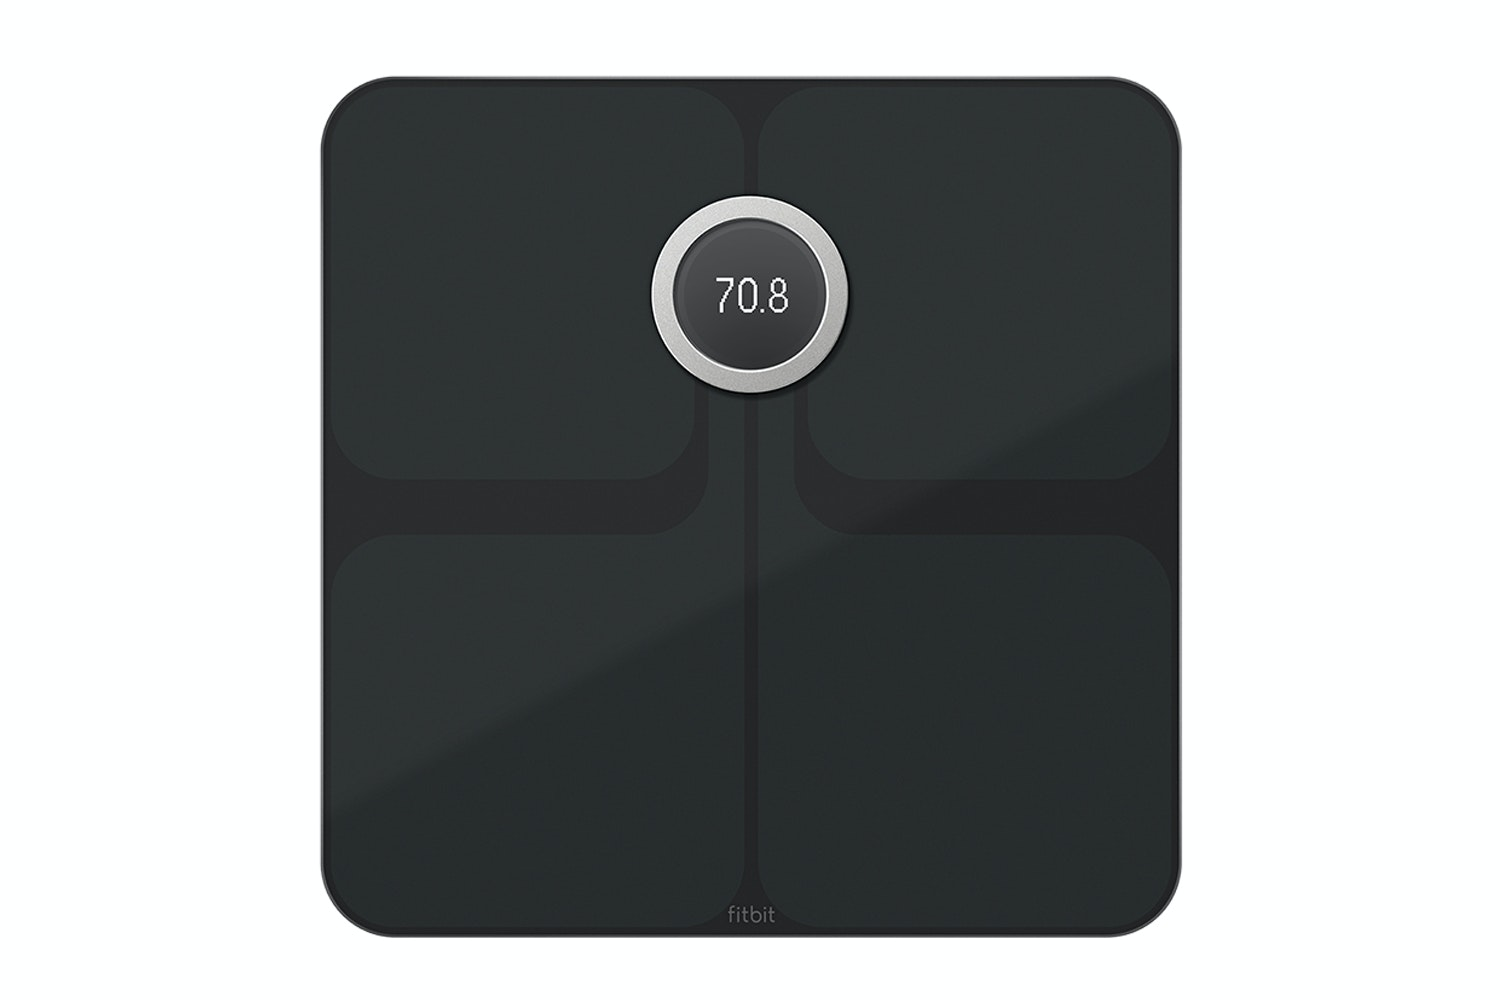 Fitbit Aria 2 WiFi Smart Scale | Black